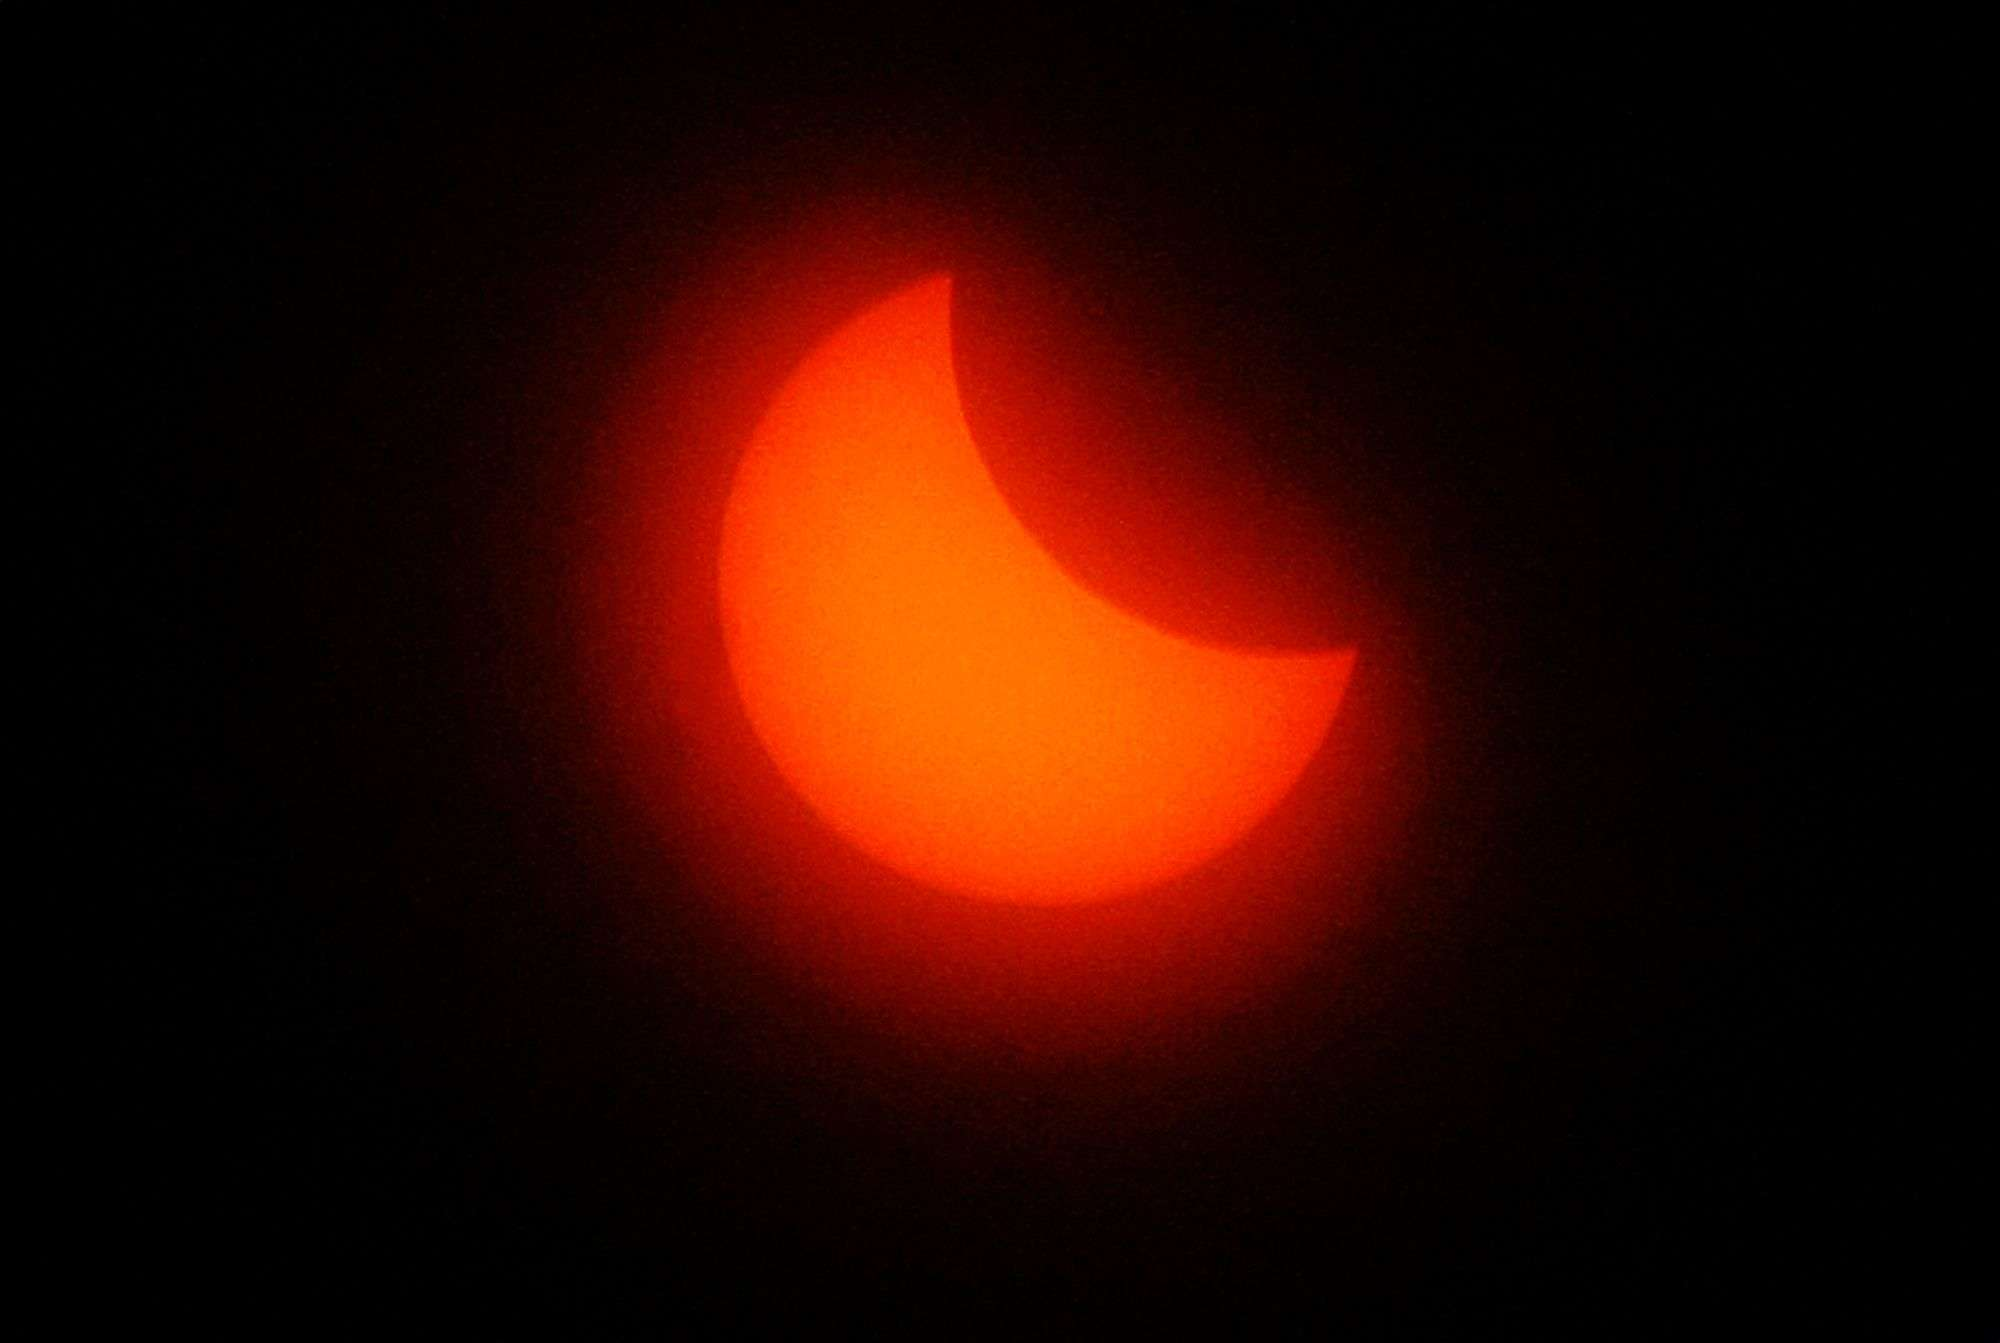 The sun is seen during a solar eclipse in Marseille, southern France. (AP Photo/Claude Paris)